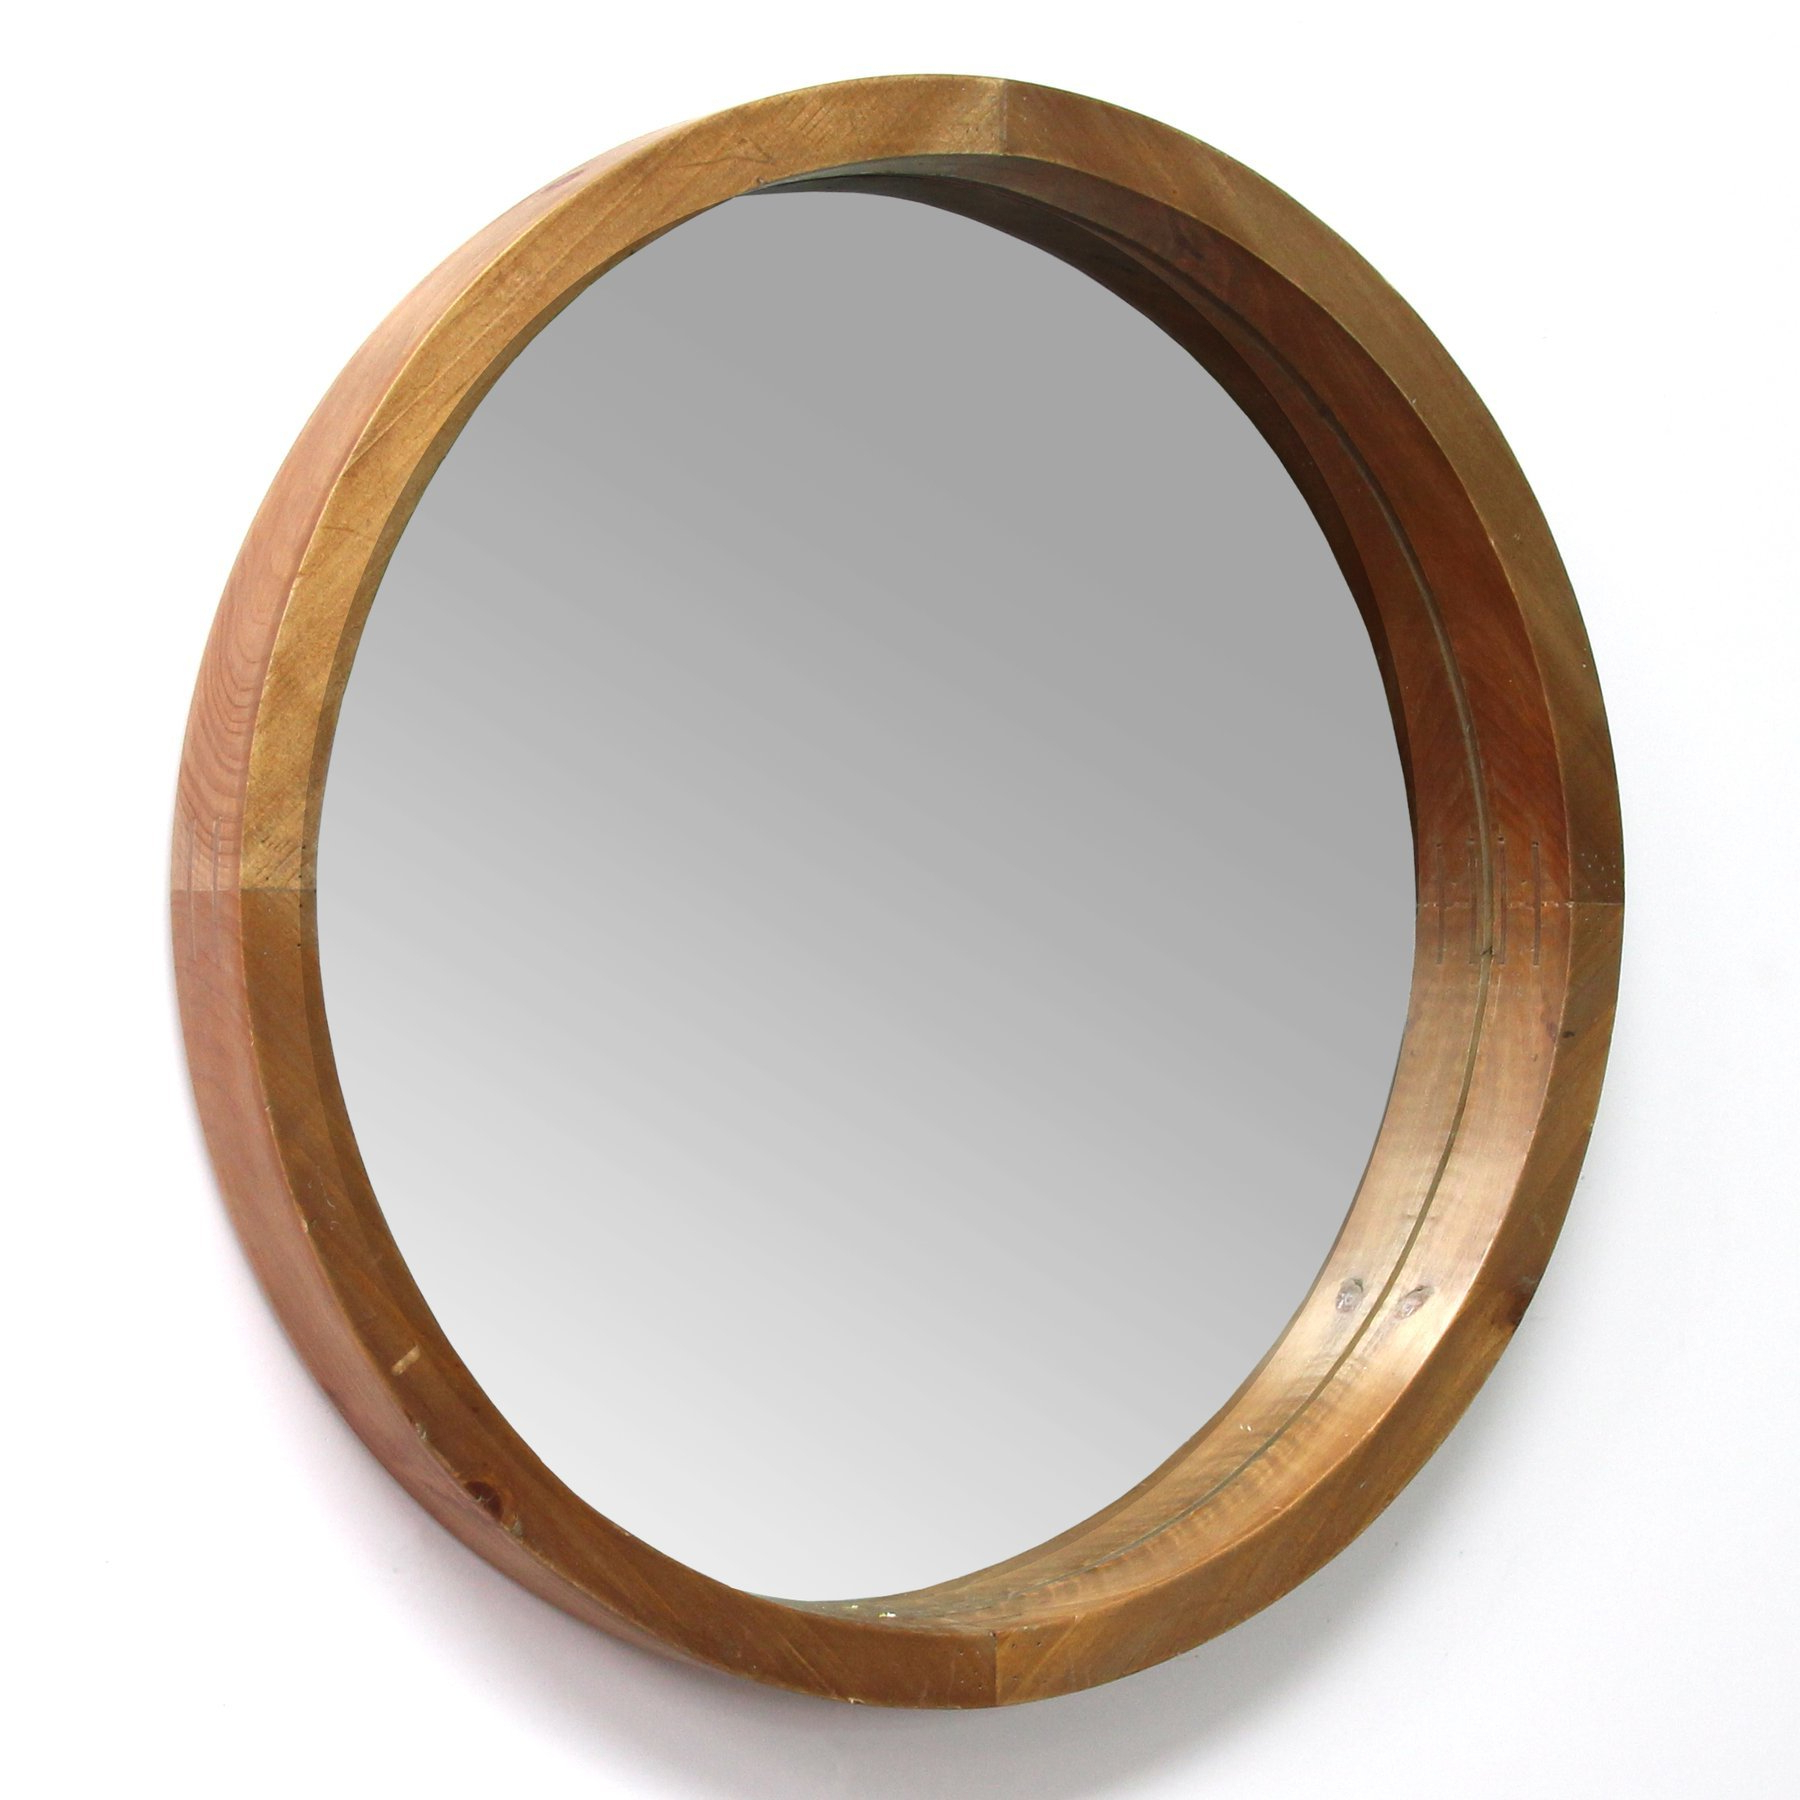 Coronado Wood Accent Mirror Throughout 2019 Wood Accent Mirrors (Gallery 12 of 20)